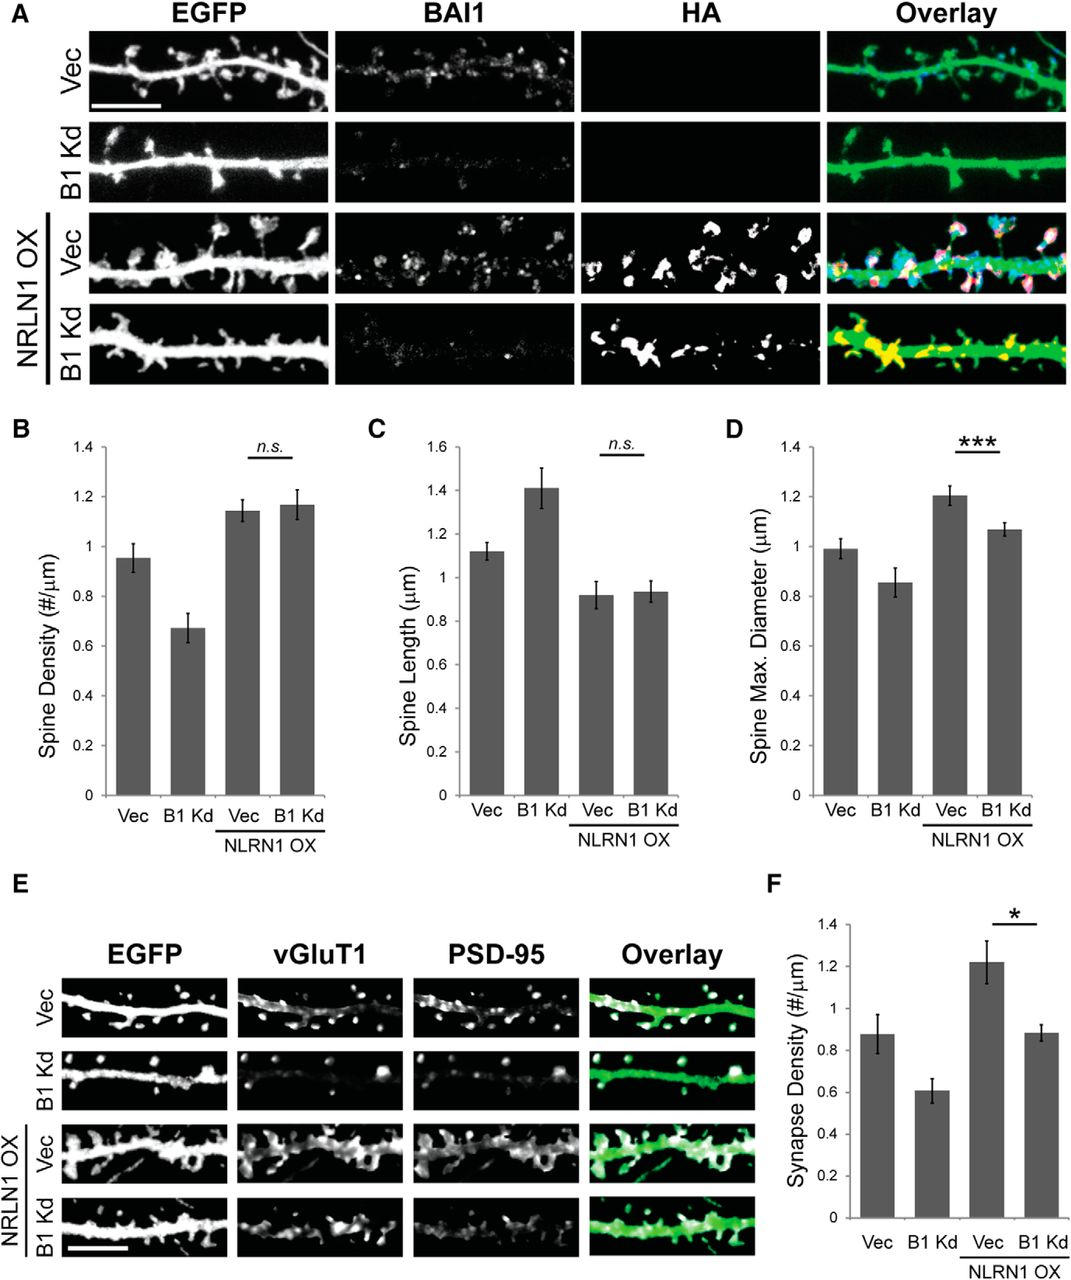 The Adhesion-GPCR BAI1 Promotes Excitatory Synaptogenesis by